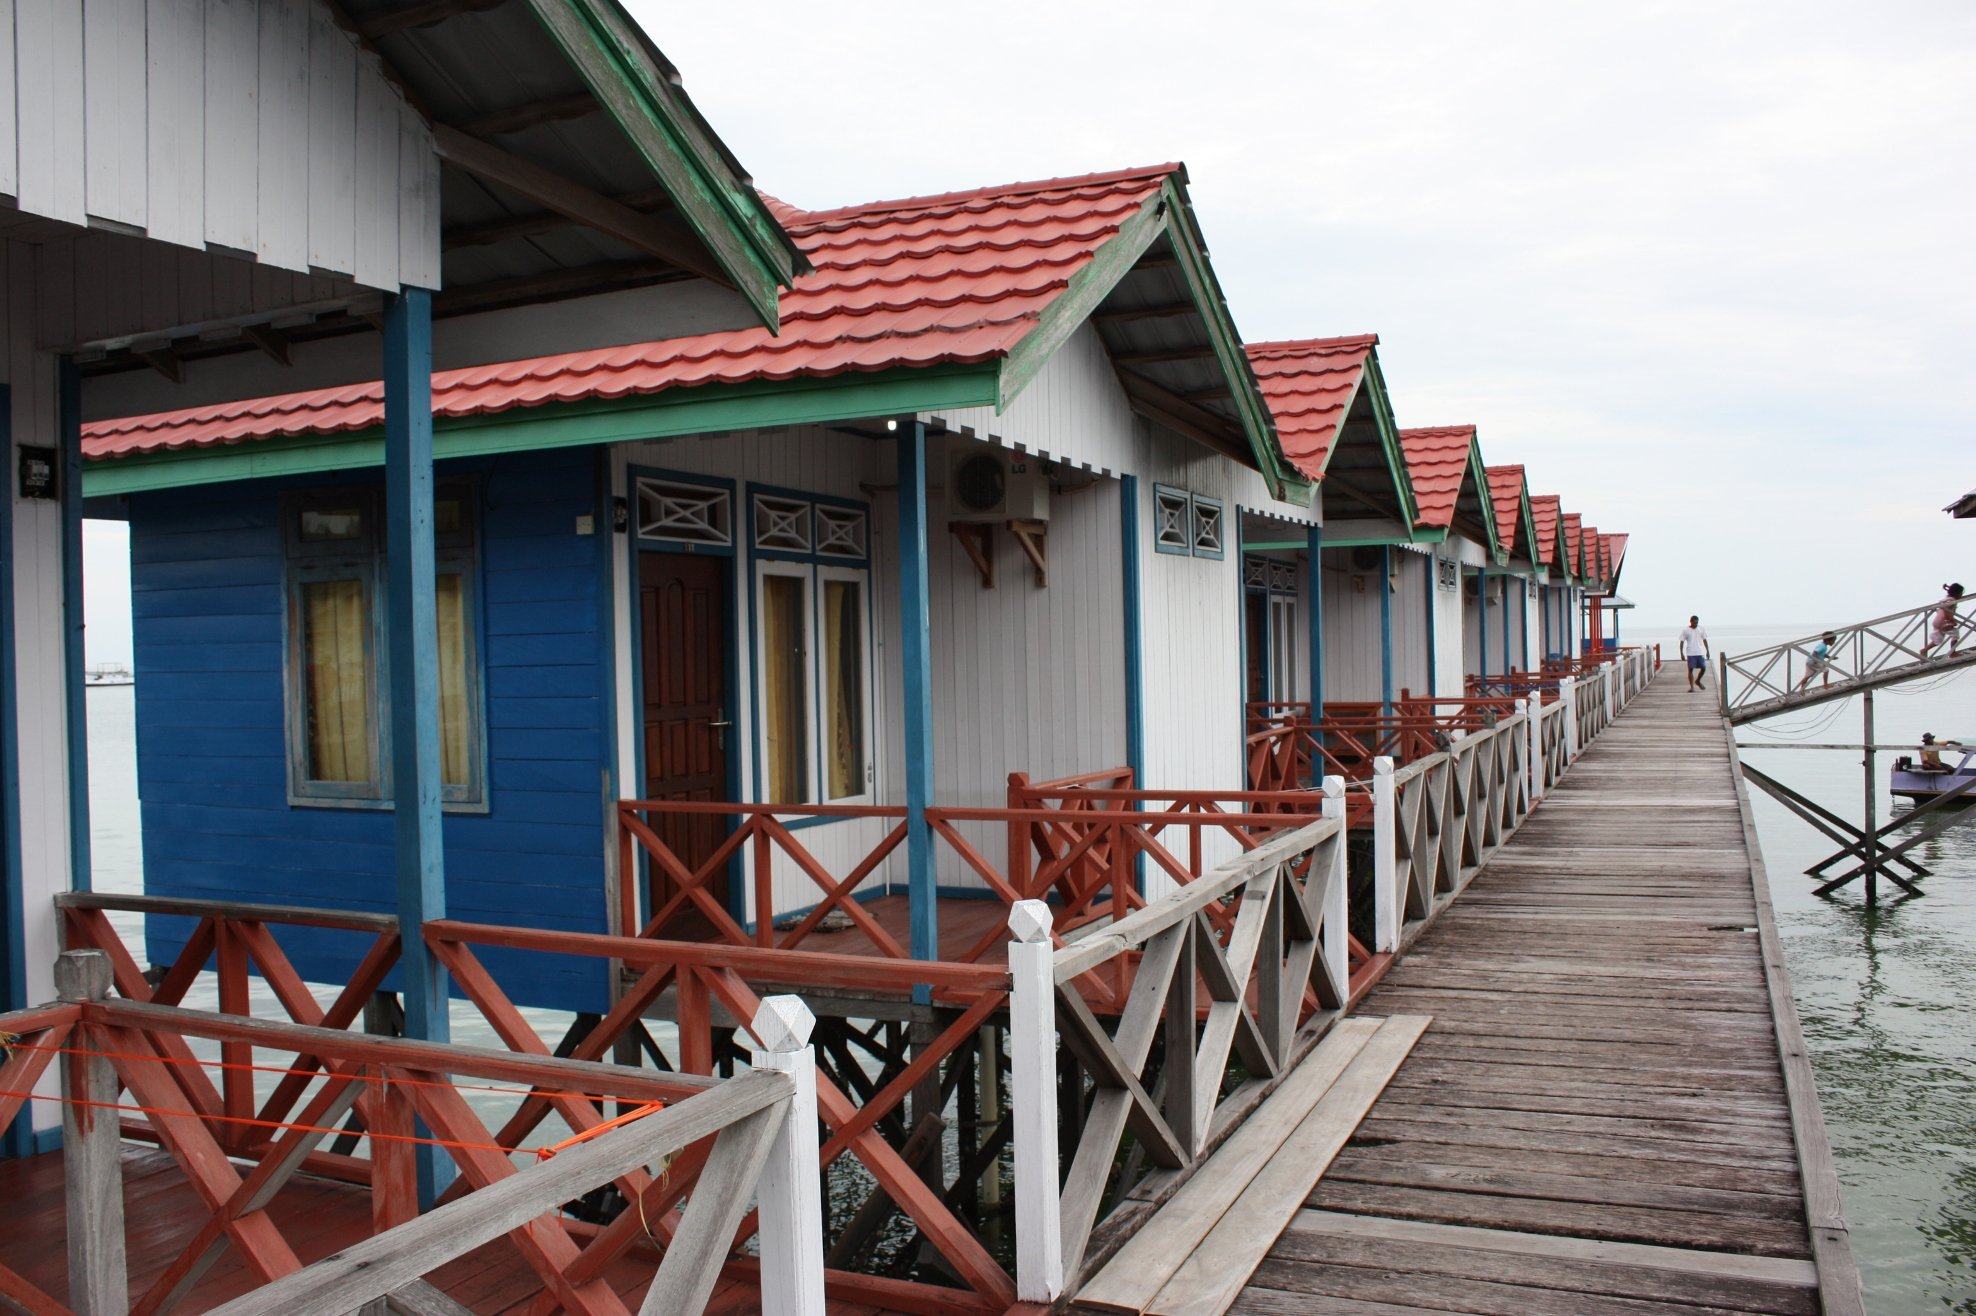 Sari cottage Derawan